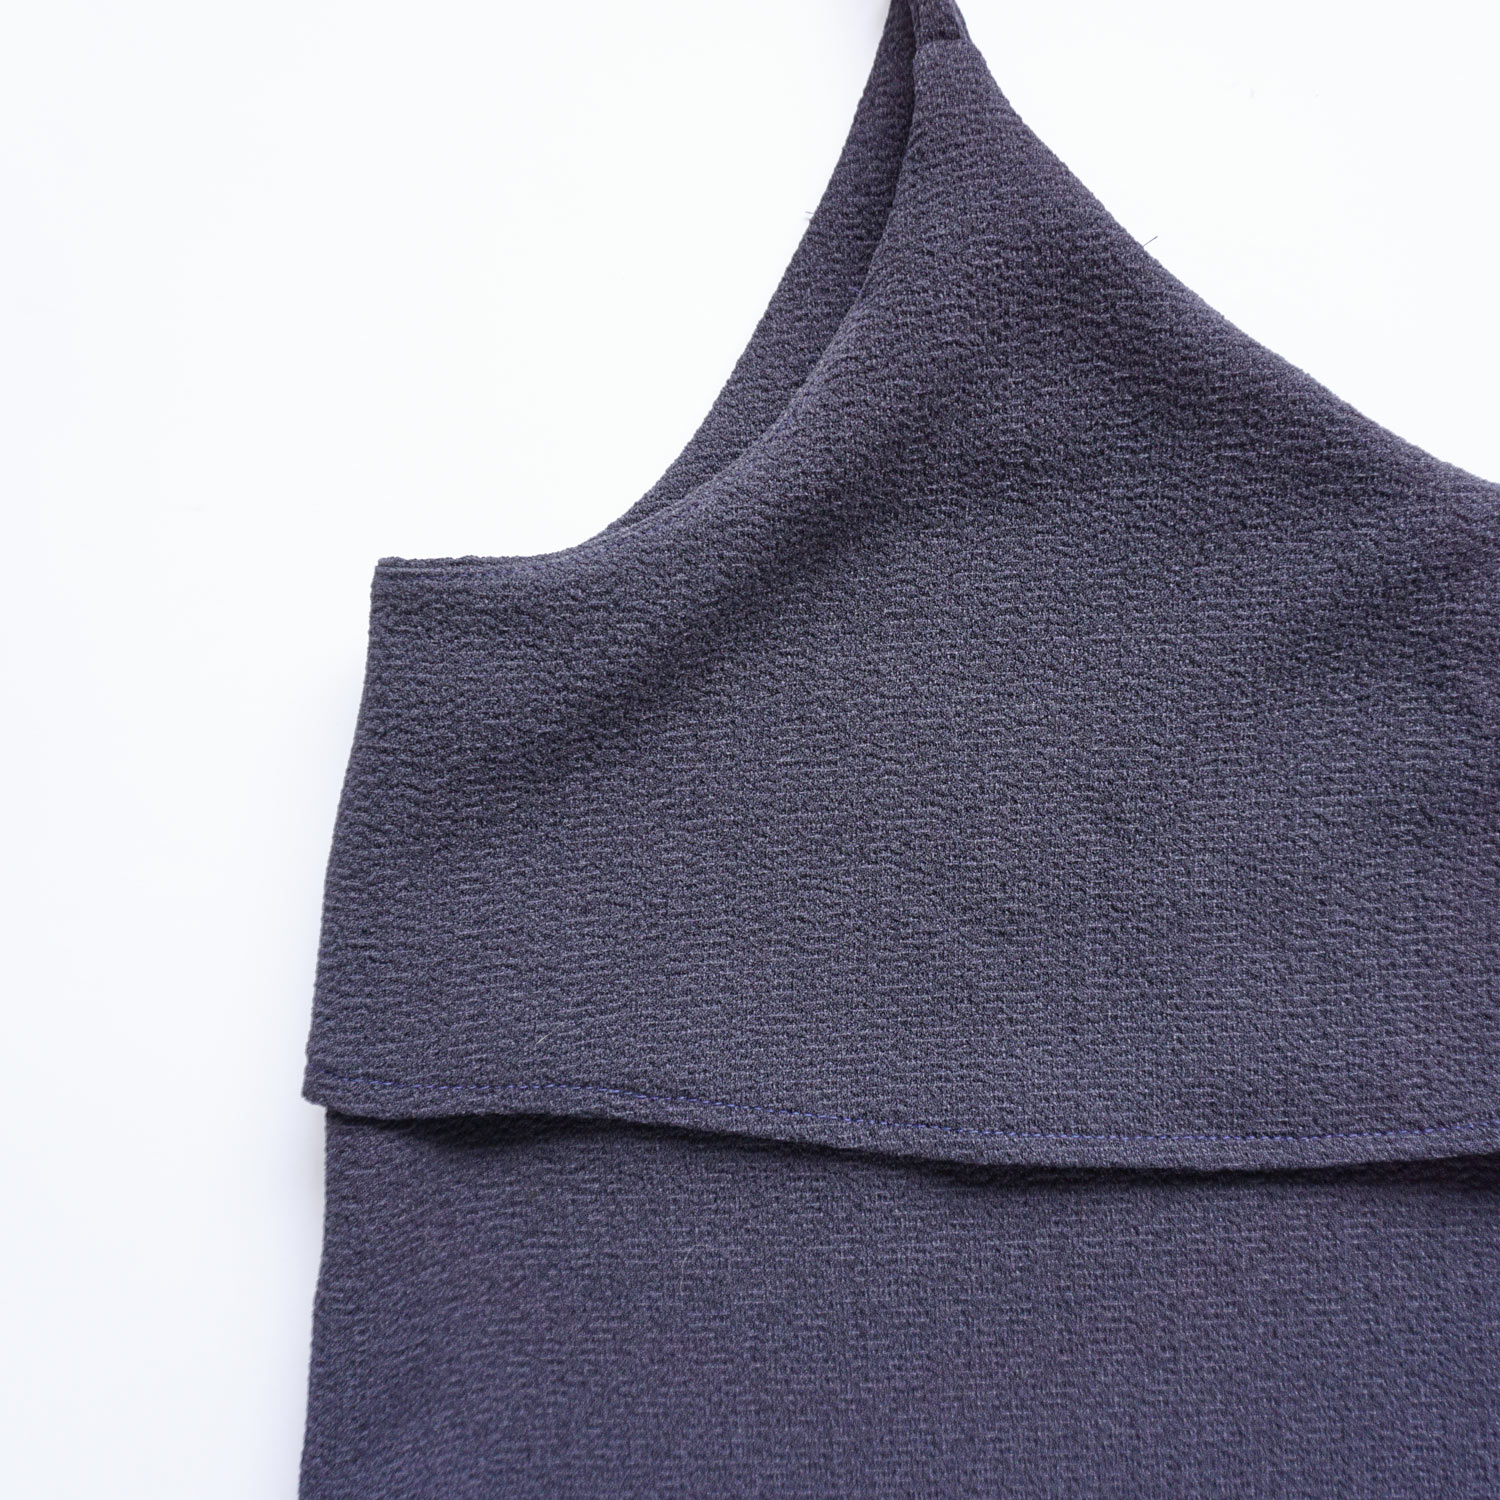 DIY Navy Camisole, a review of the Ogden Cami sewing pattern by True Bias | Sew DIY